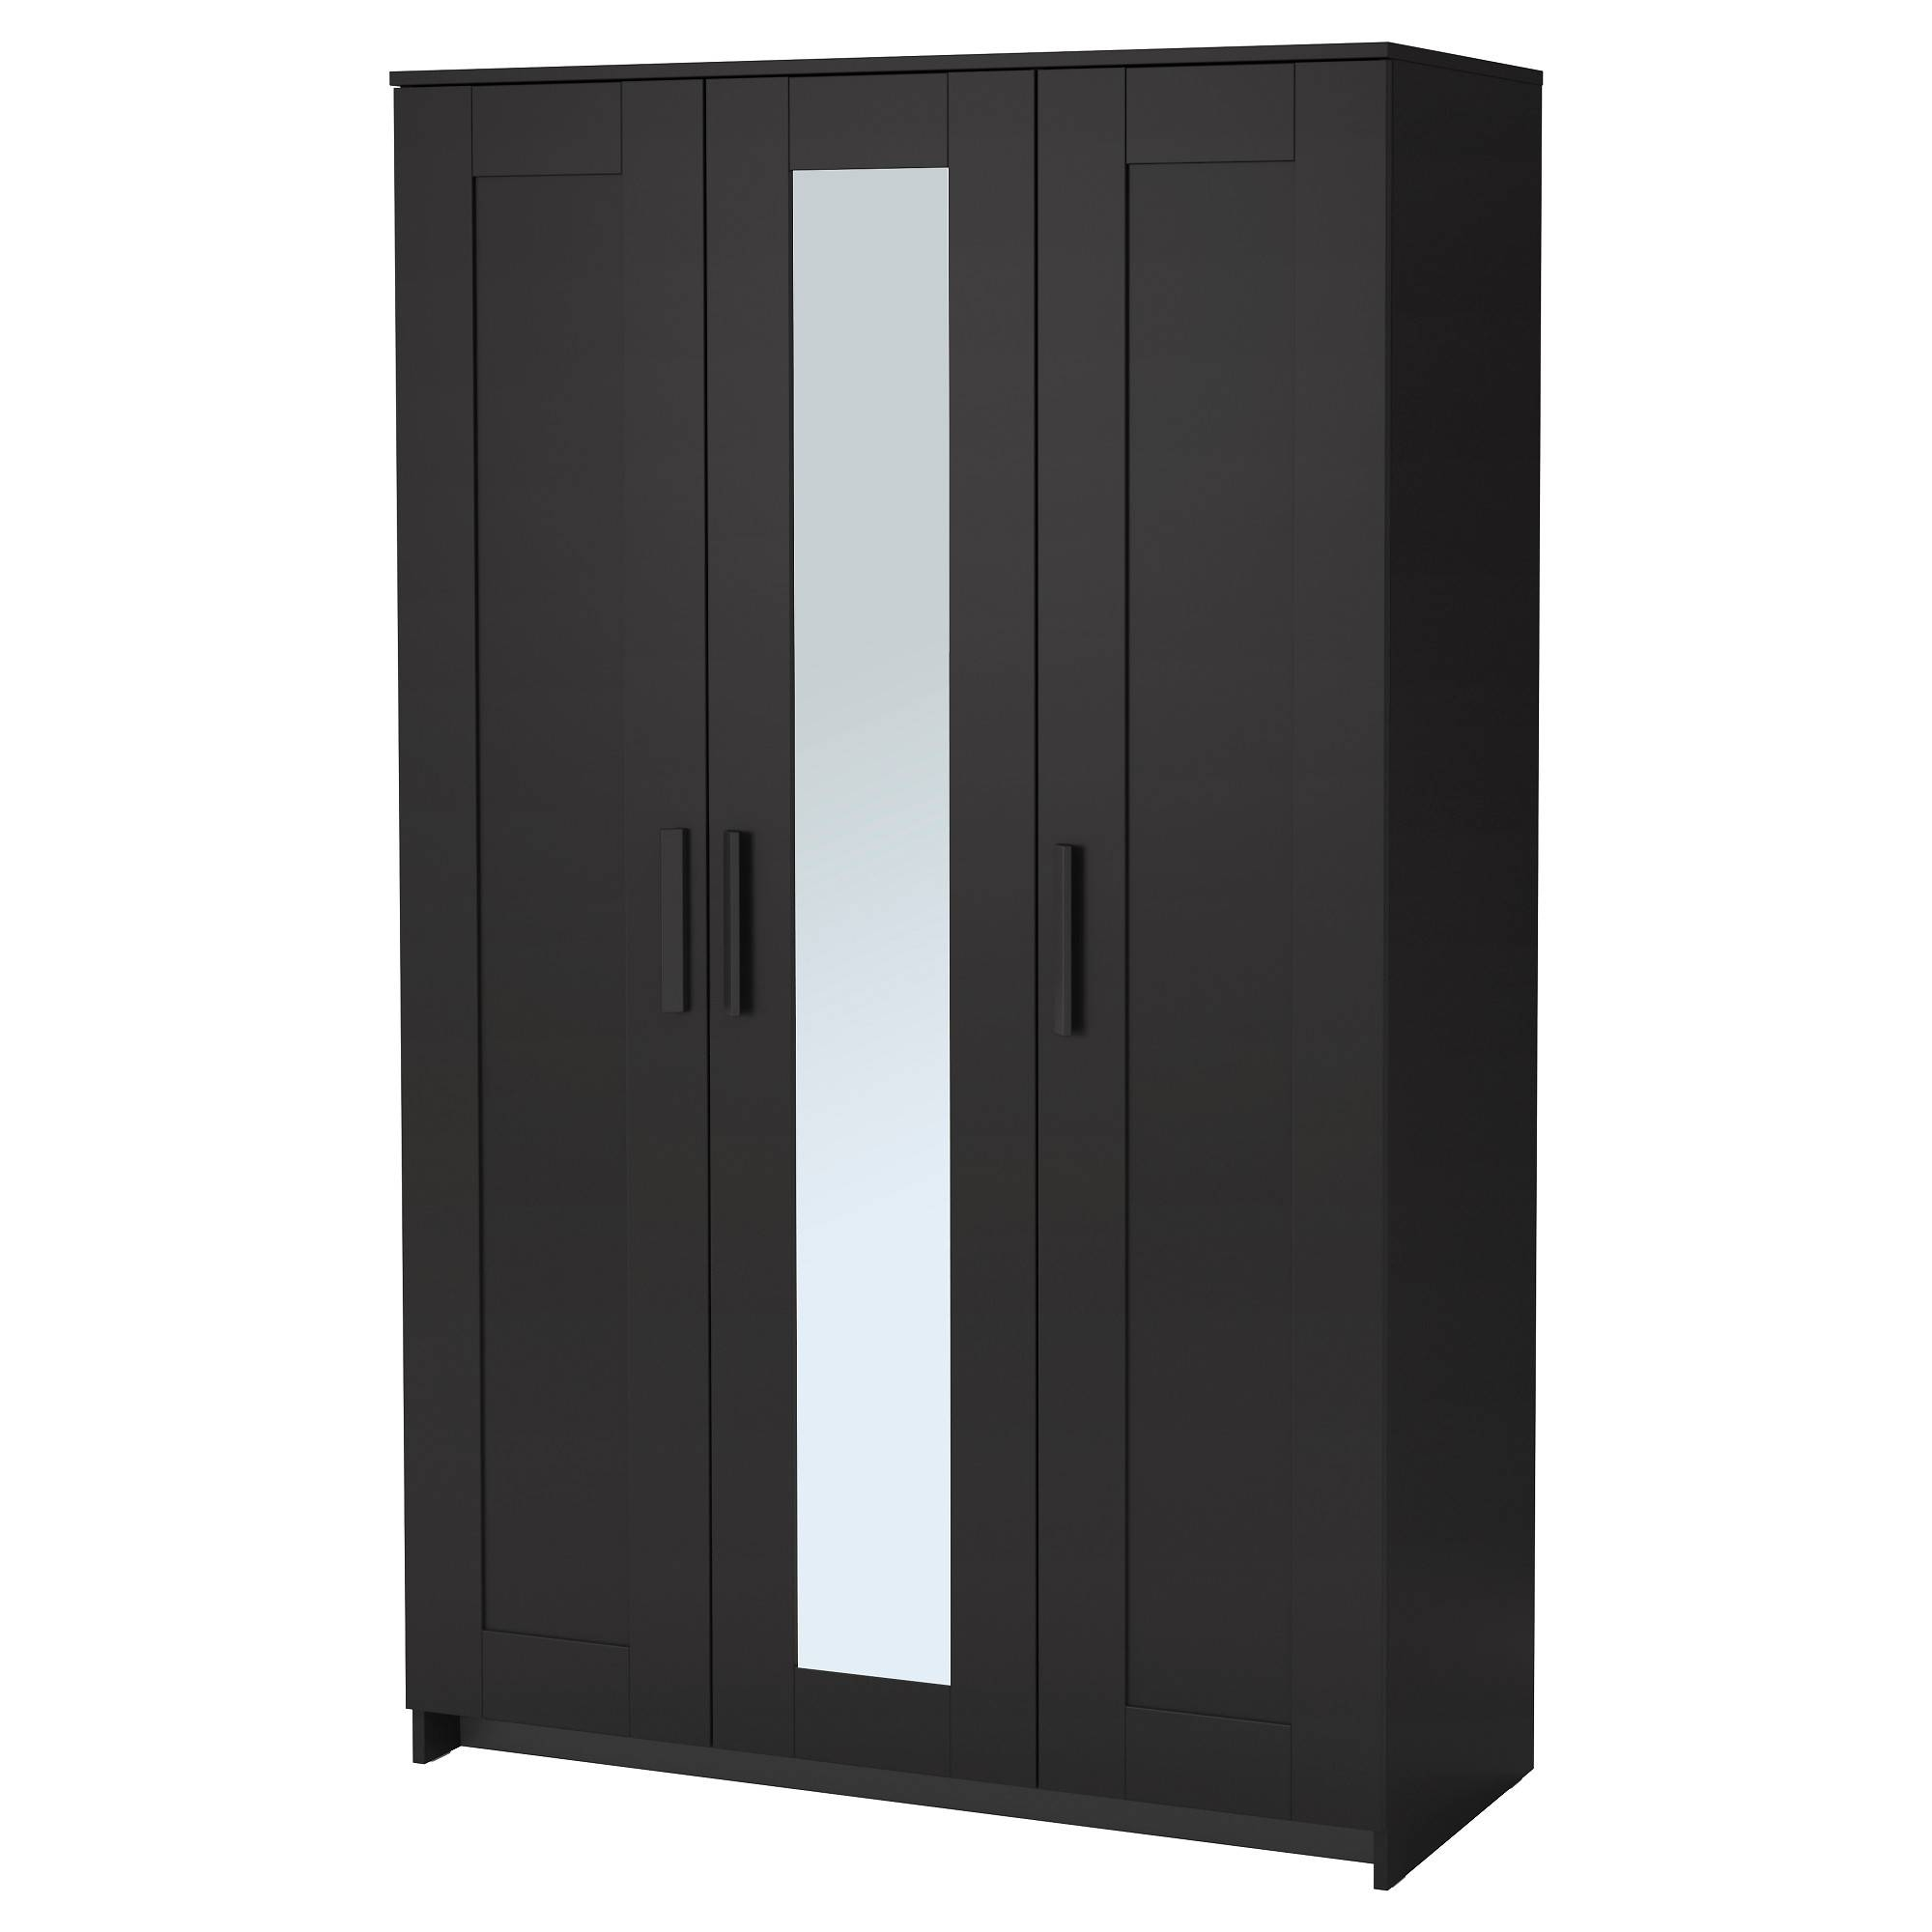 Brimnes Wardrobe With 3 Doors - Black - Ikea for 3 Door Black Wardrobes (Image 3 of 15)